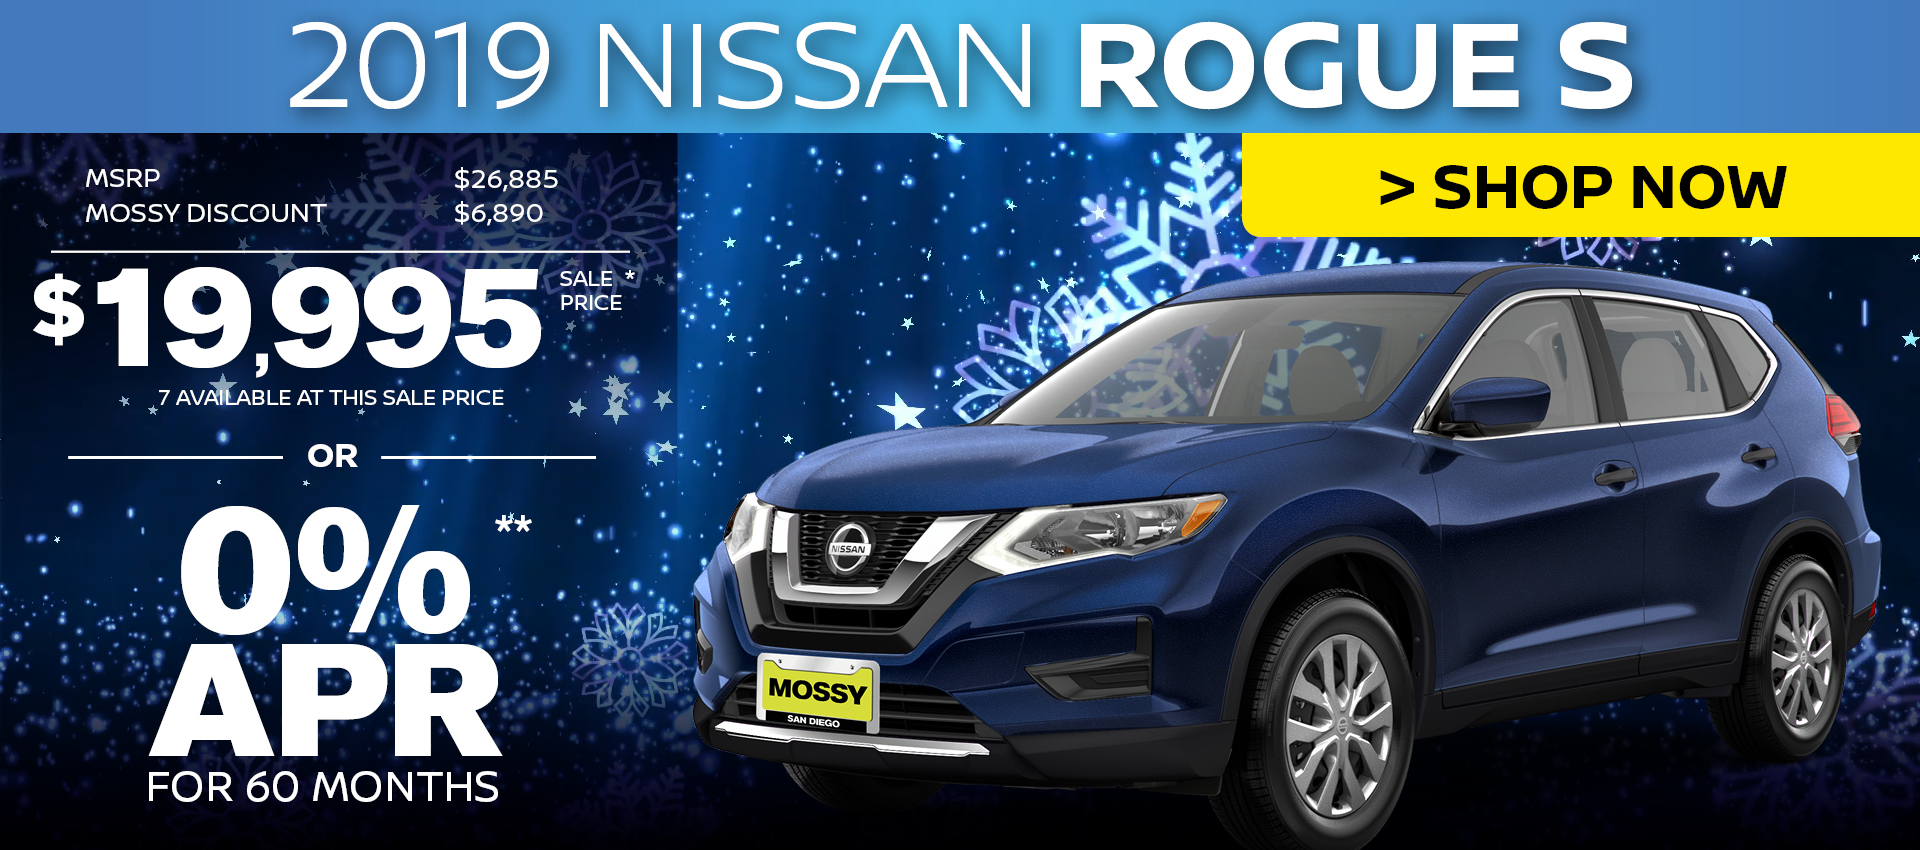 Mossy Nissan - Nissan Rogue $20,995 Purchase HP